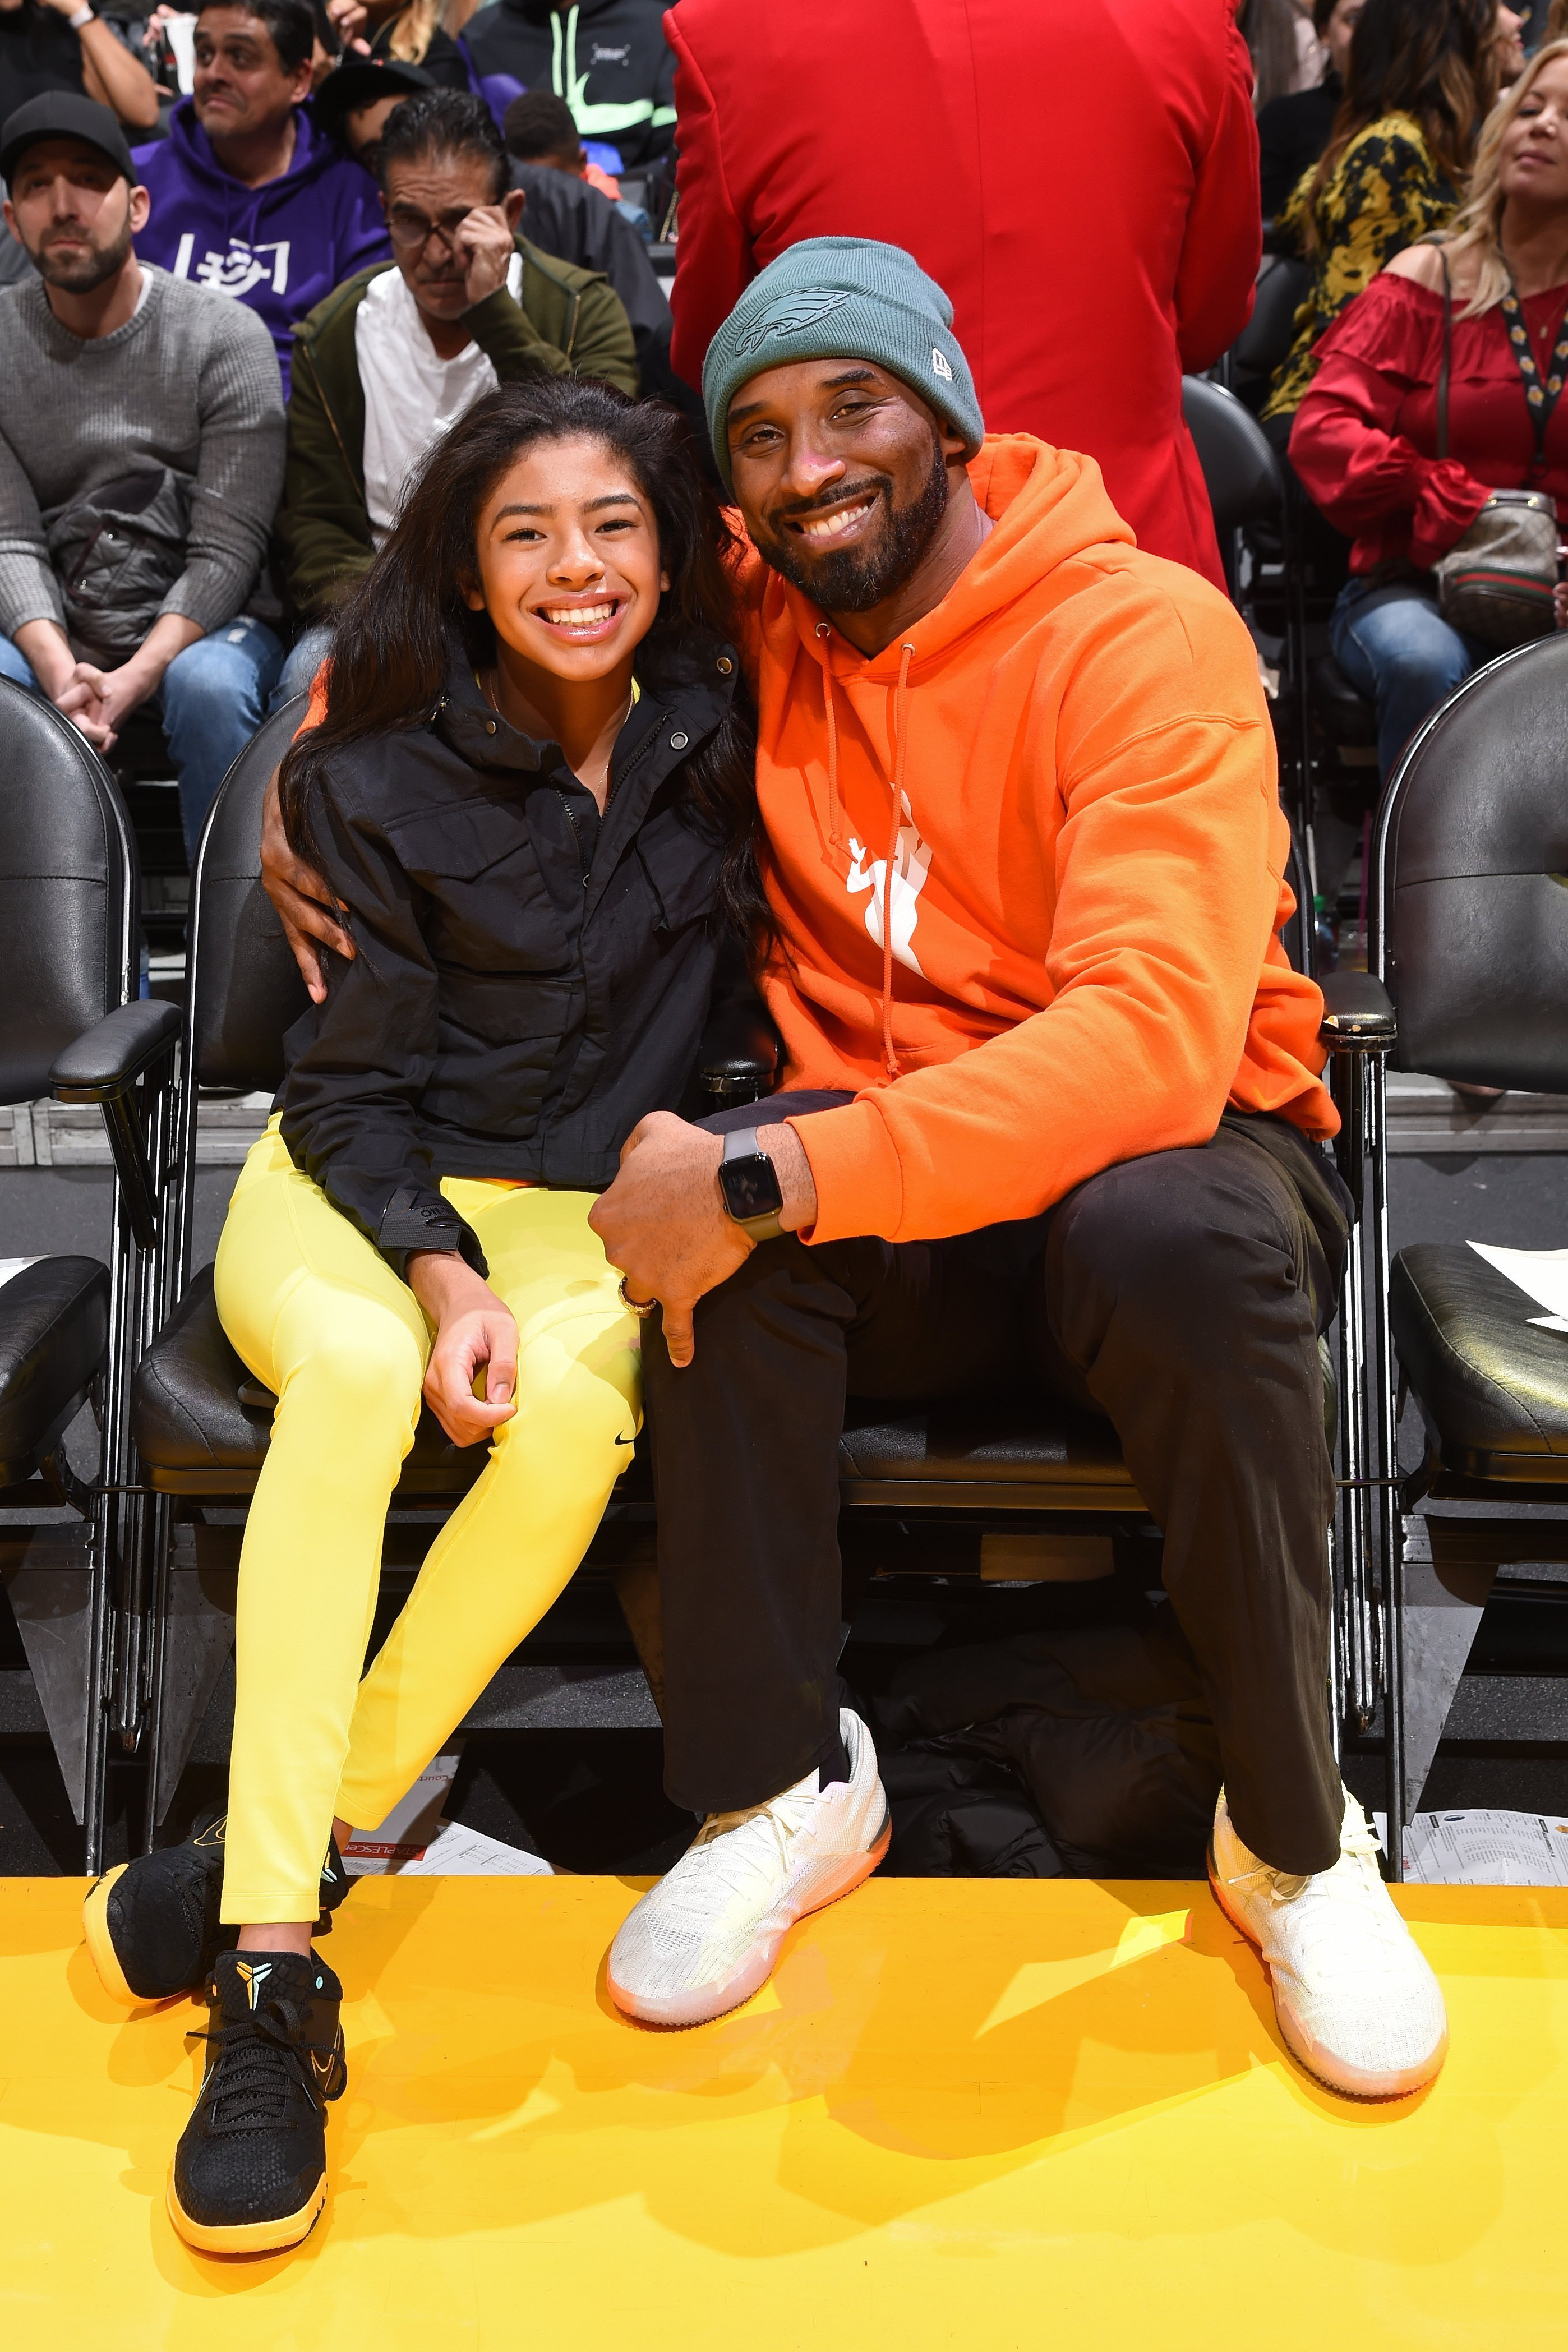 Kobe Bryant & Gianna Bryant at the game between the Los Angeles Lakers and the Dallas Mavericks on Dec. 29, 2019 in California | Photo: Getty Images